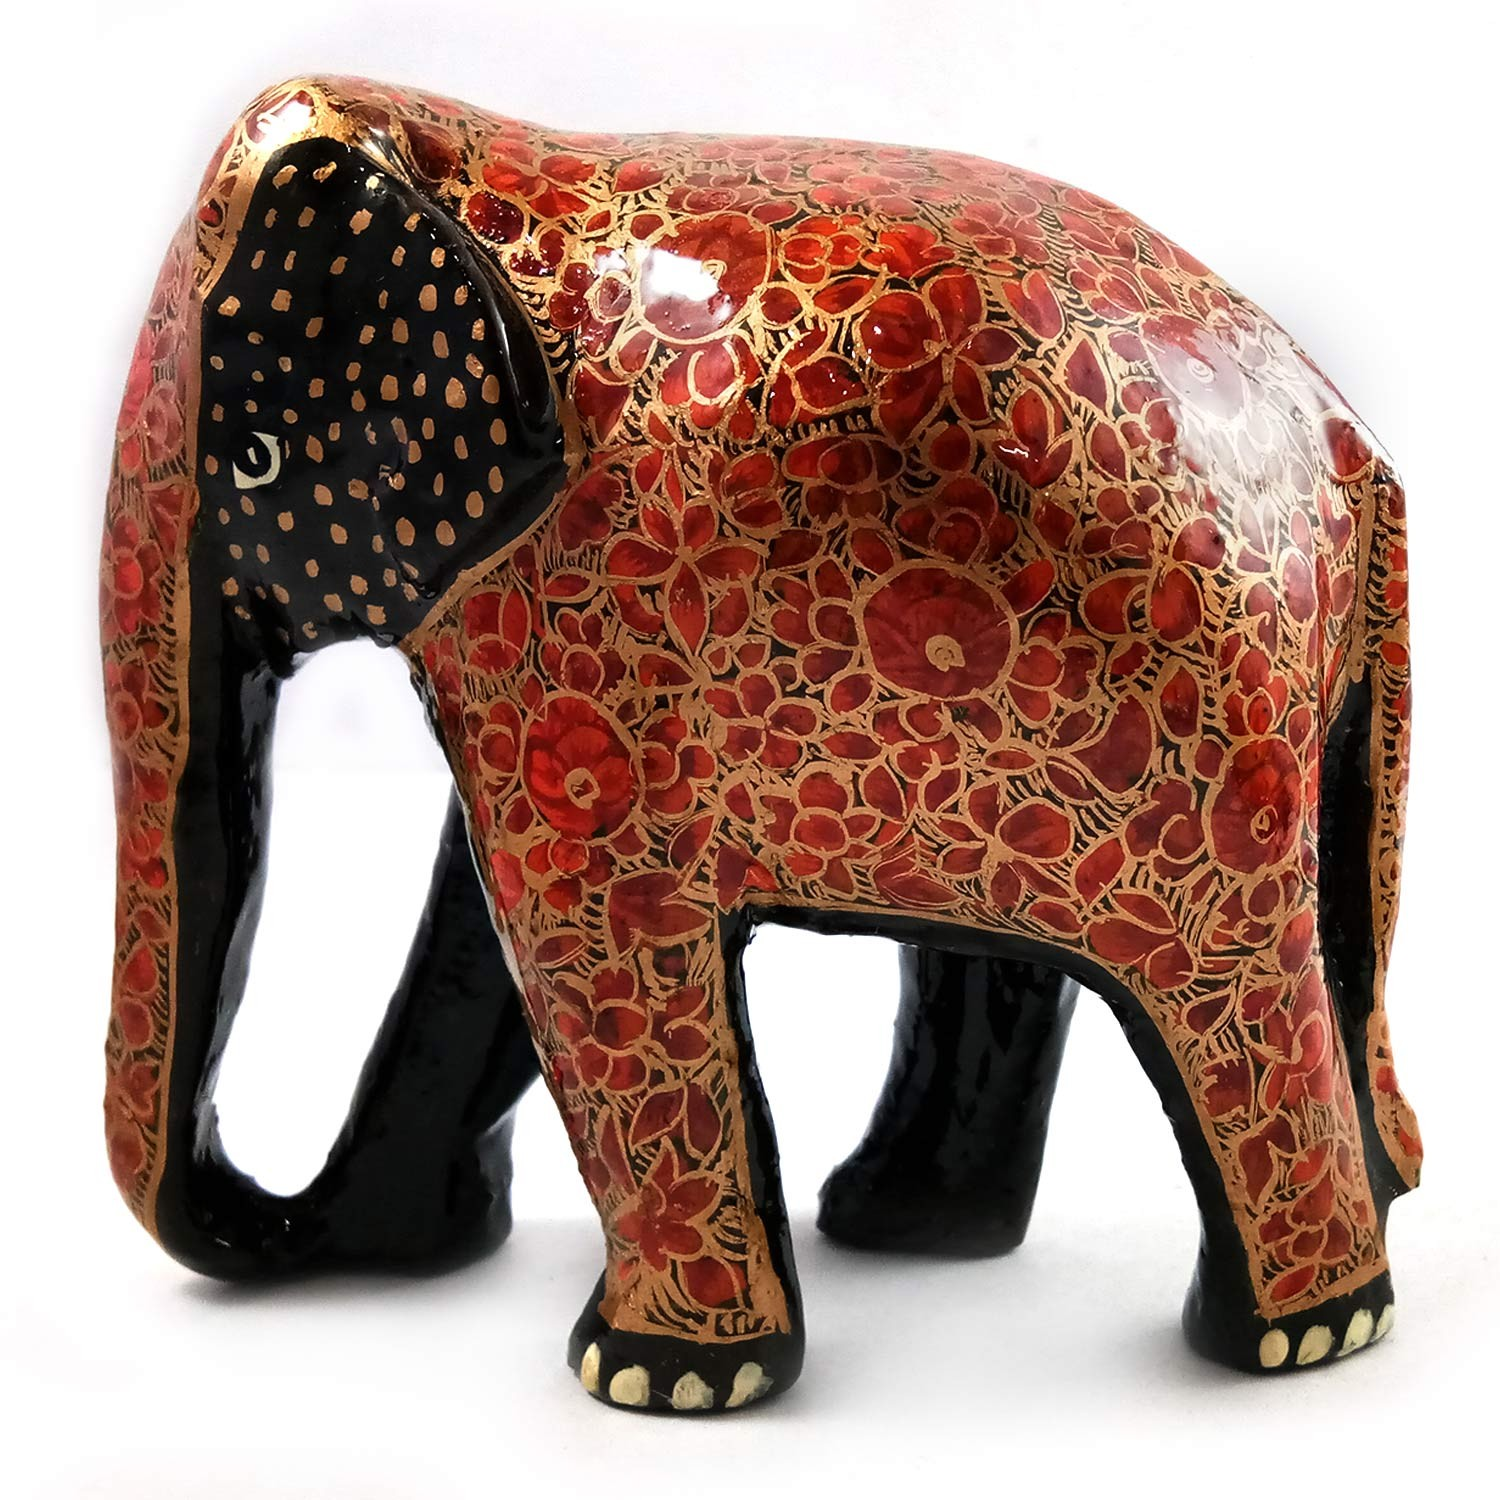 Handmade exclusive paper mache multicolor Decorative Elephant Set Of 1 By Rural Artisan.